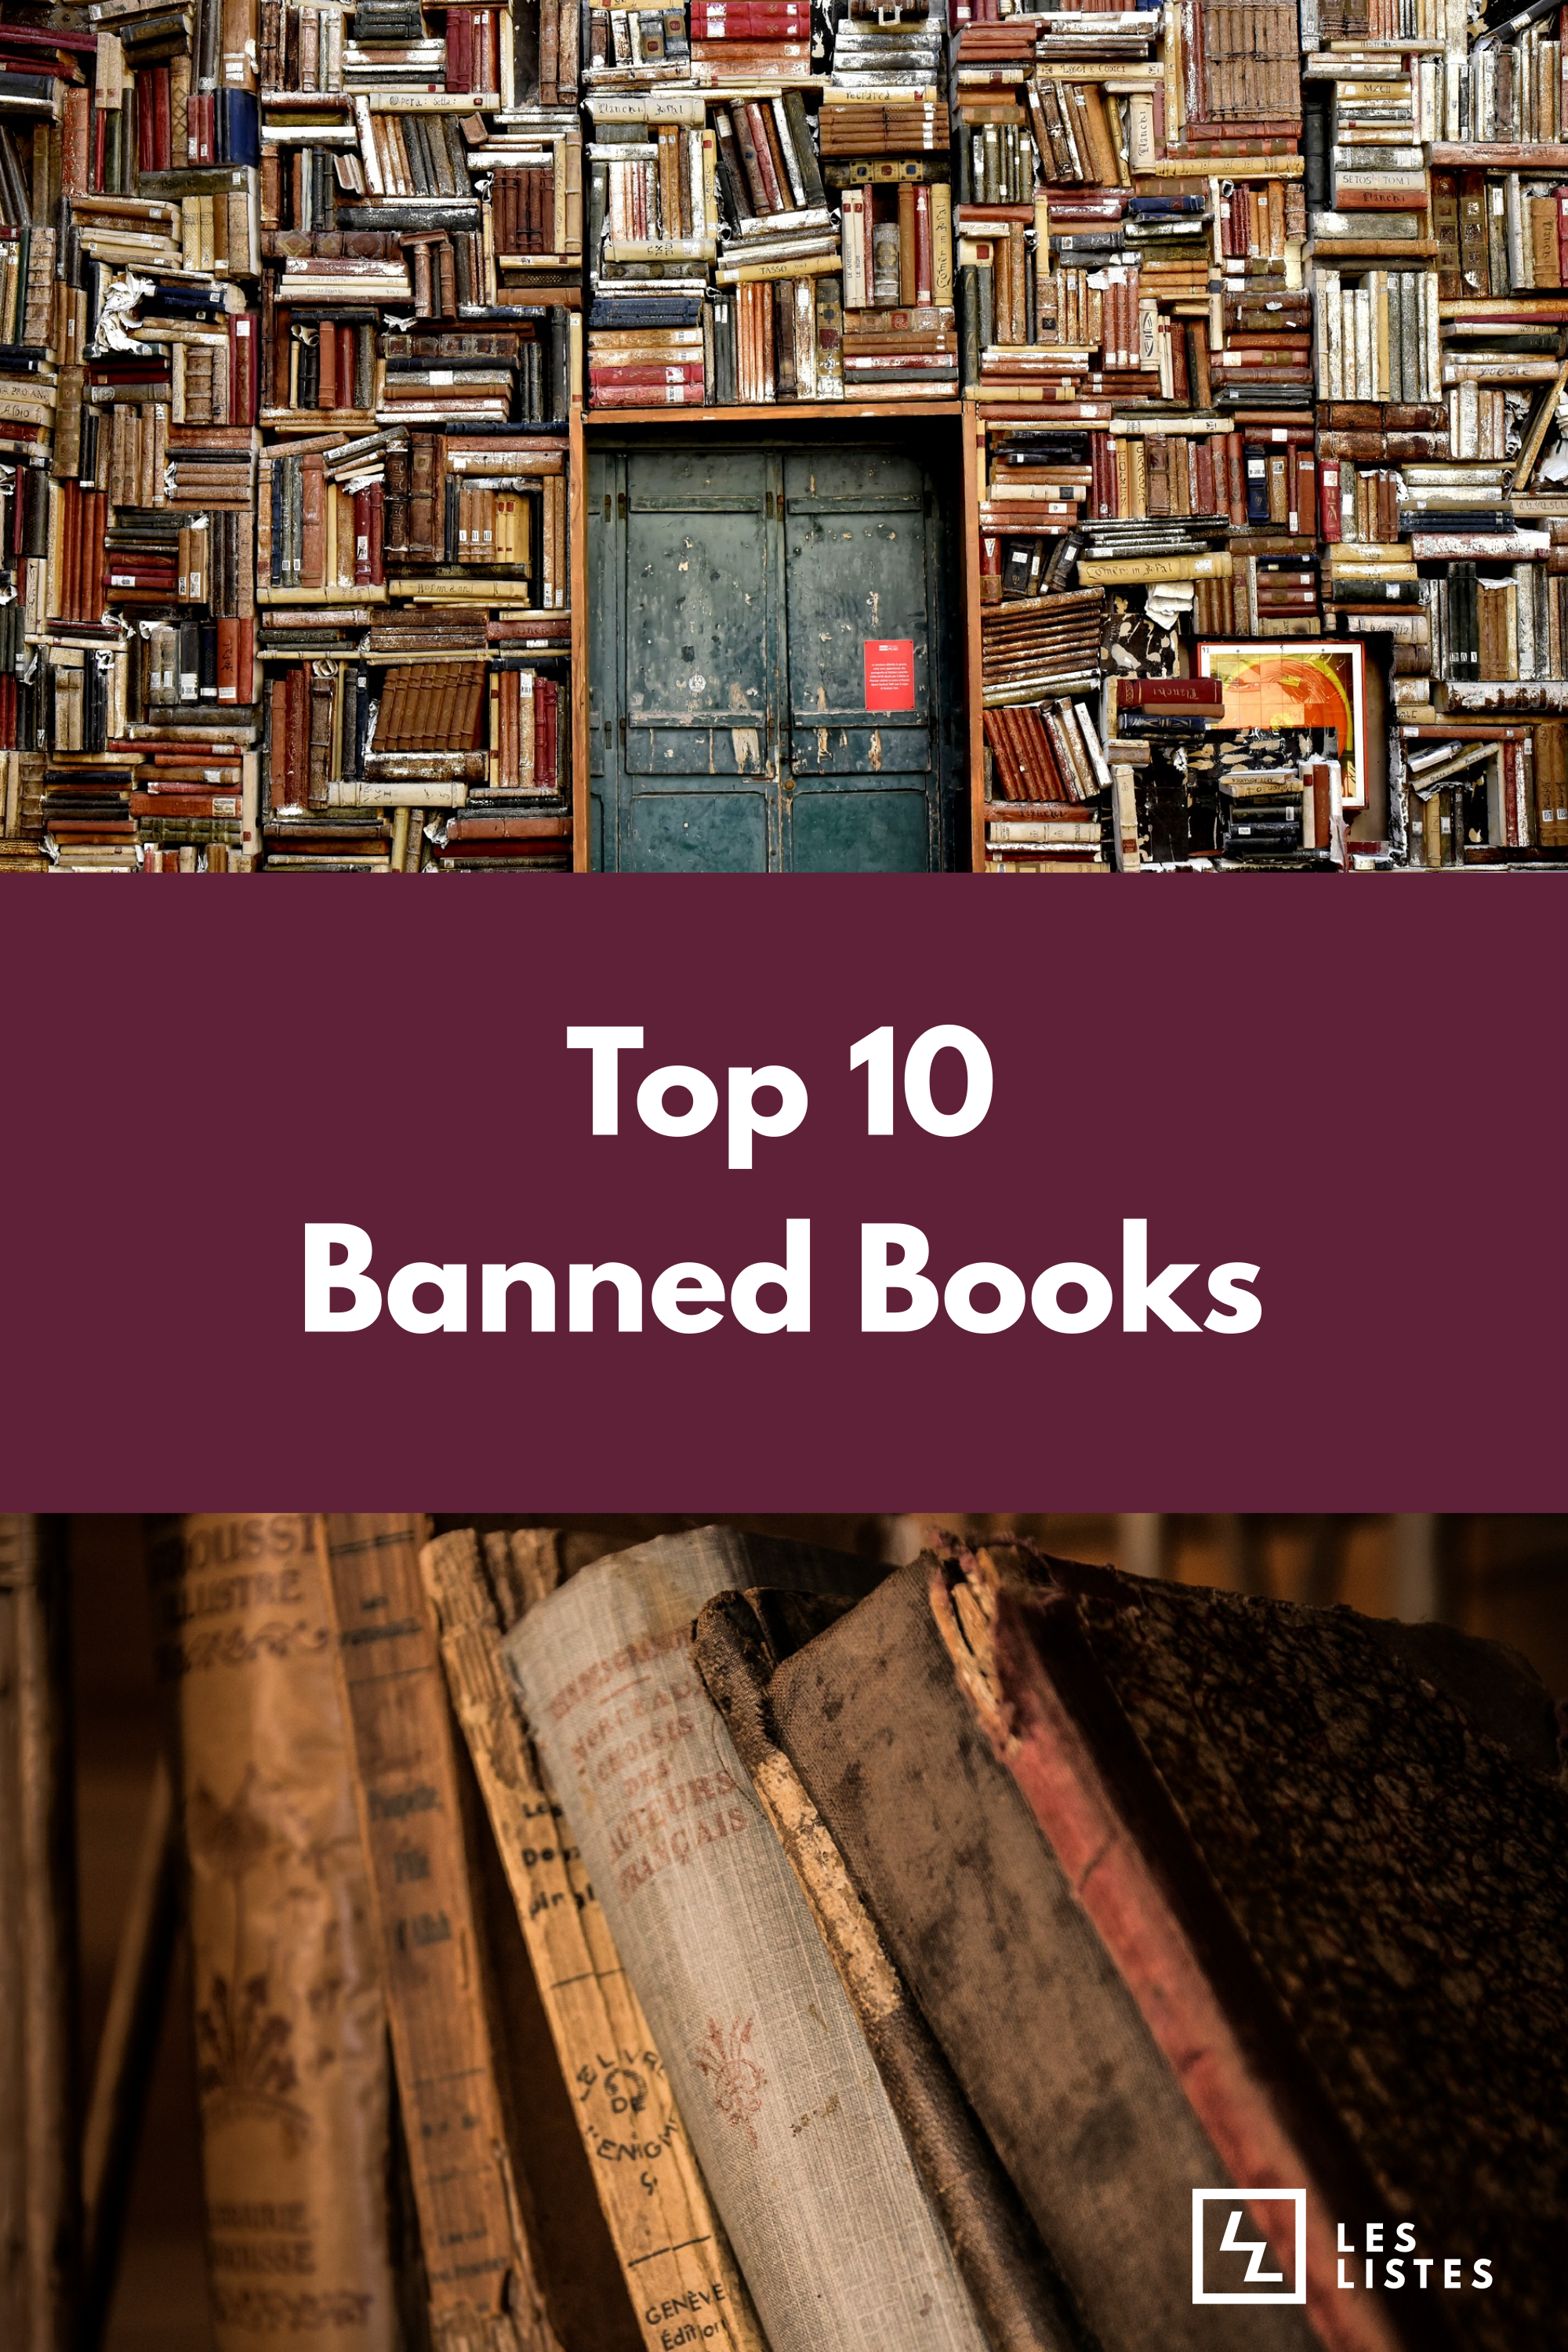 Since People Started Reading Books Governments And Counties Have Sought To Ban Literature They Deemed Inappropriate Banned Books History Of Literature Books